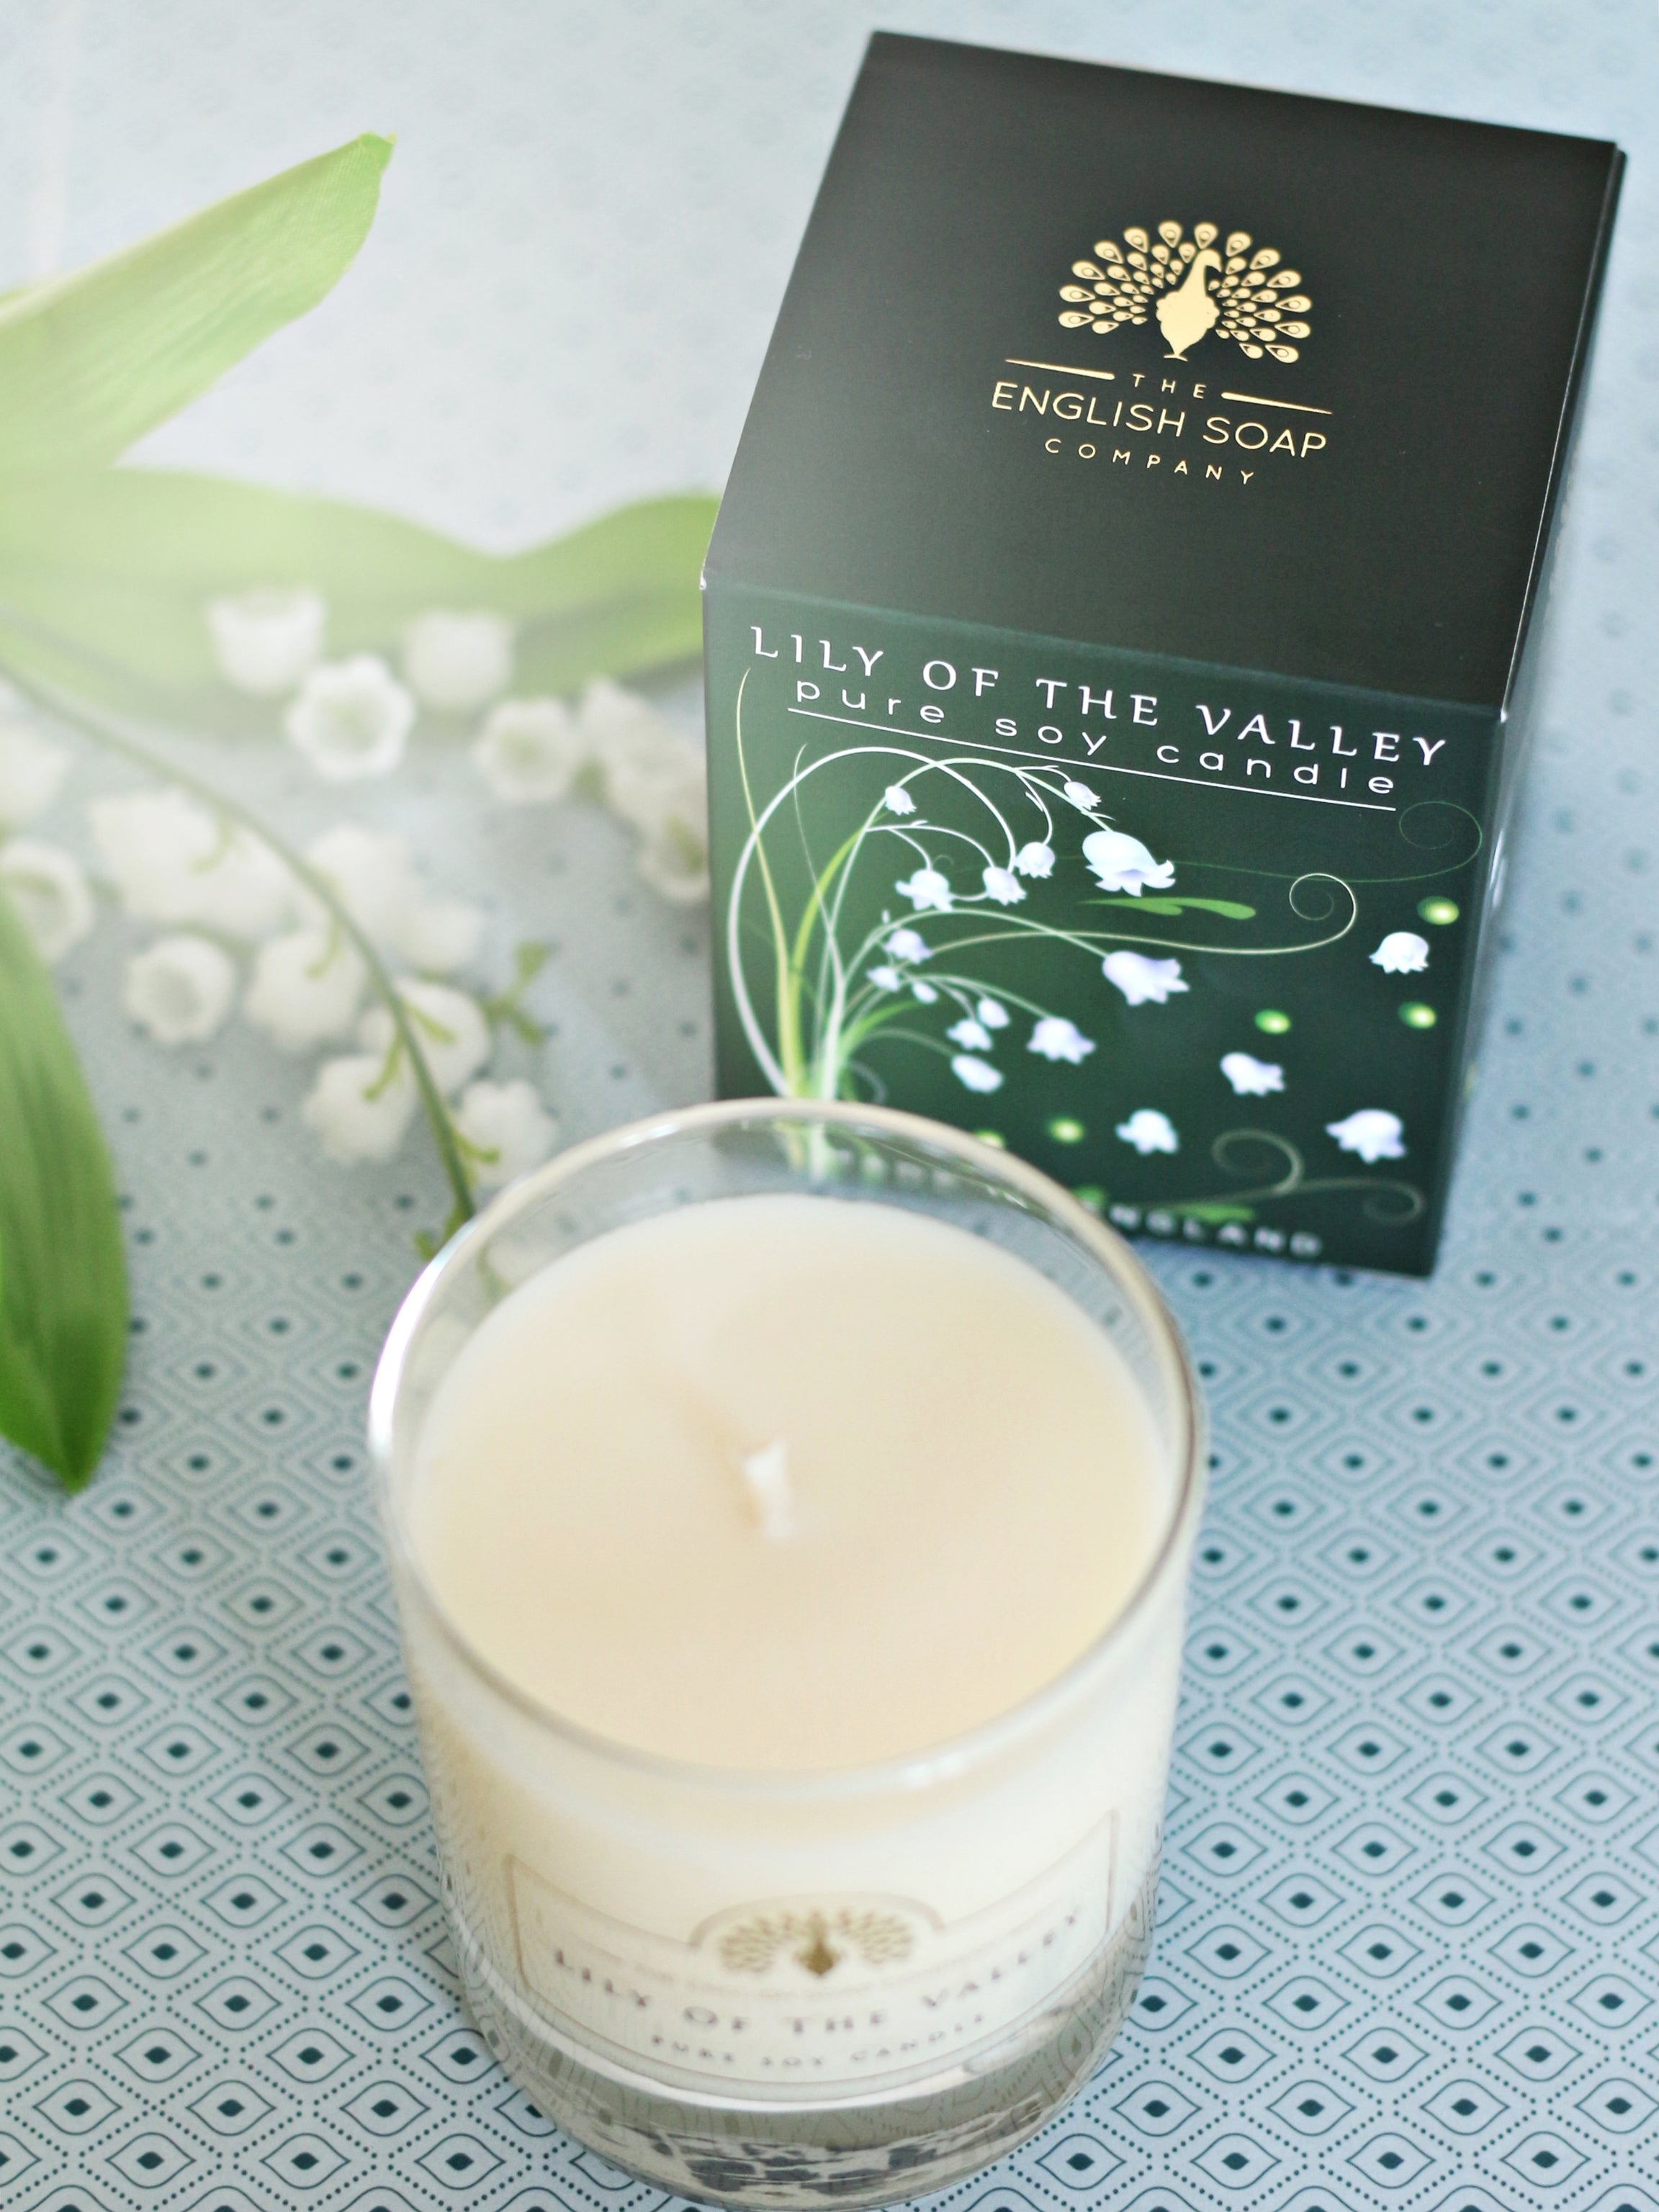 English Soap Company Soy Wax Candle - Lily of the Valley